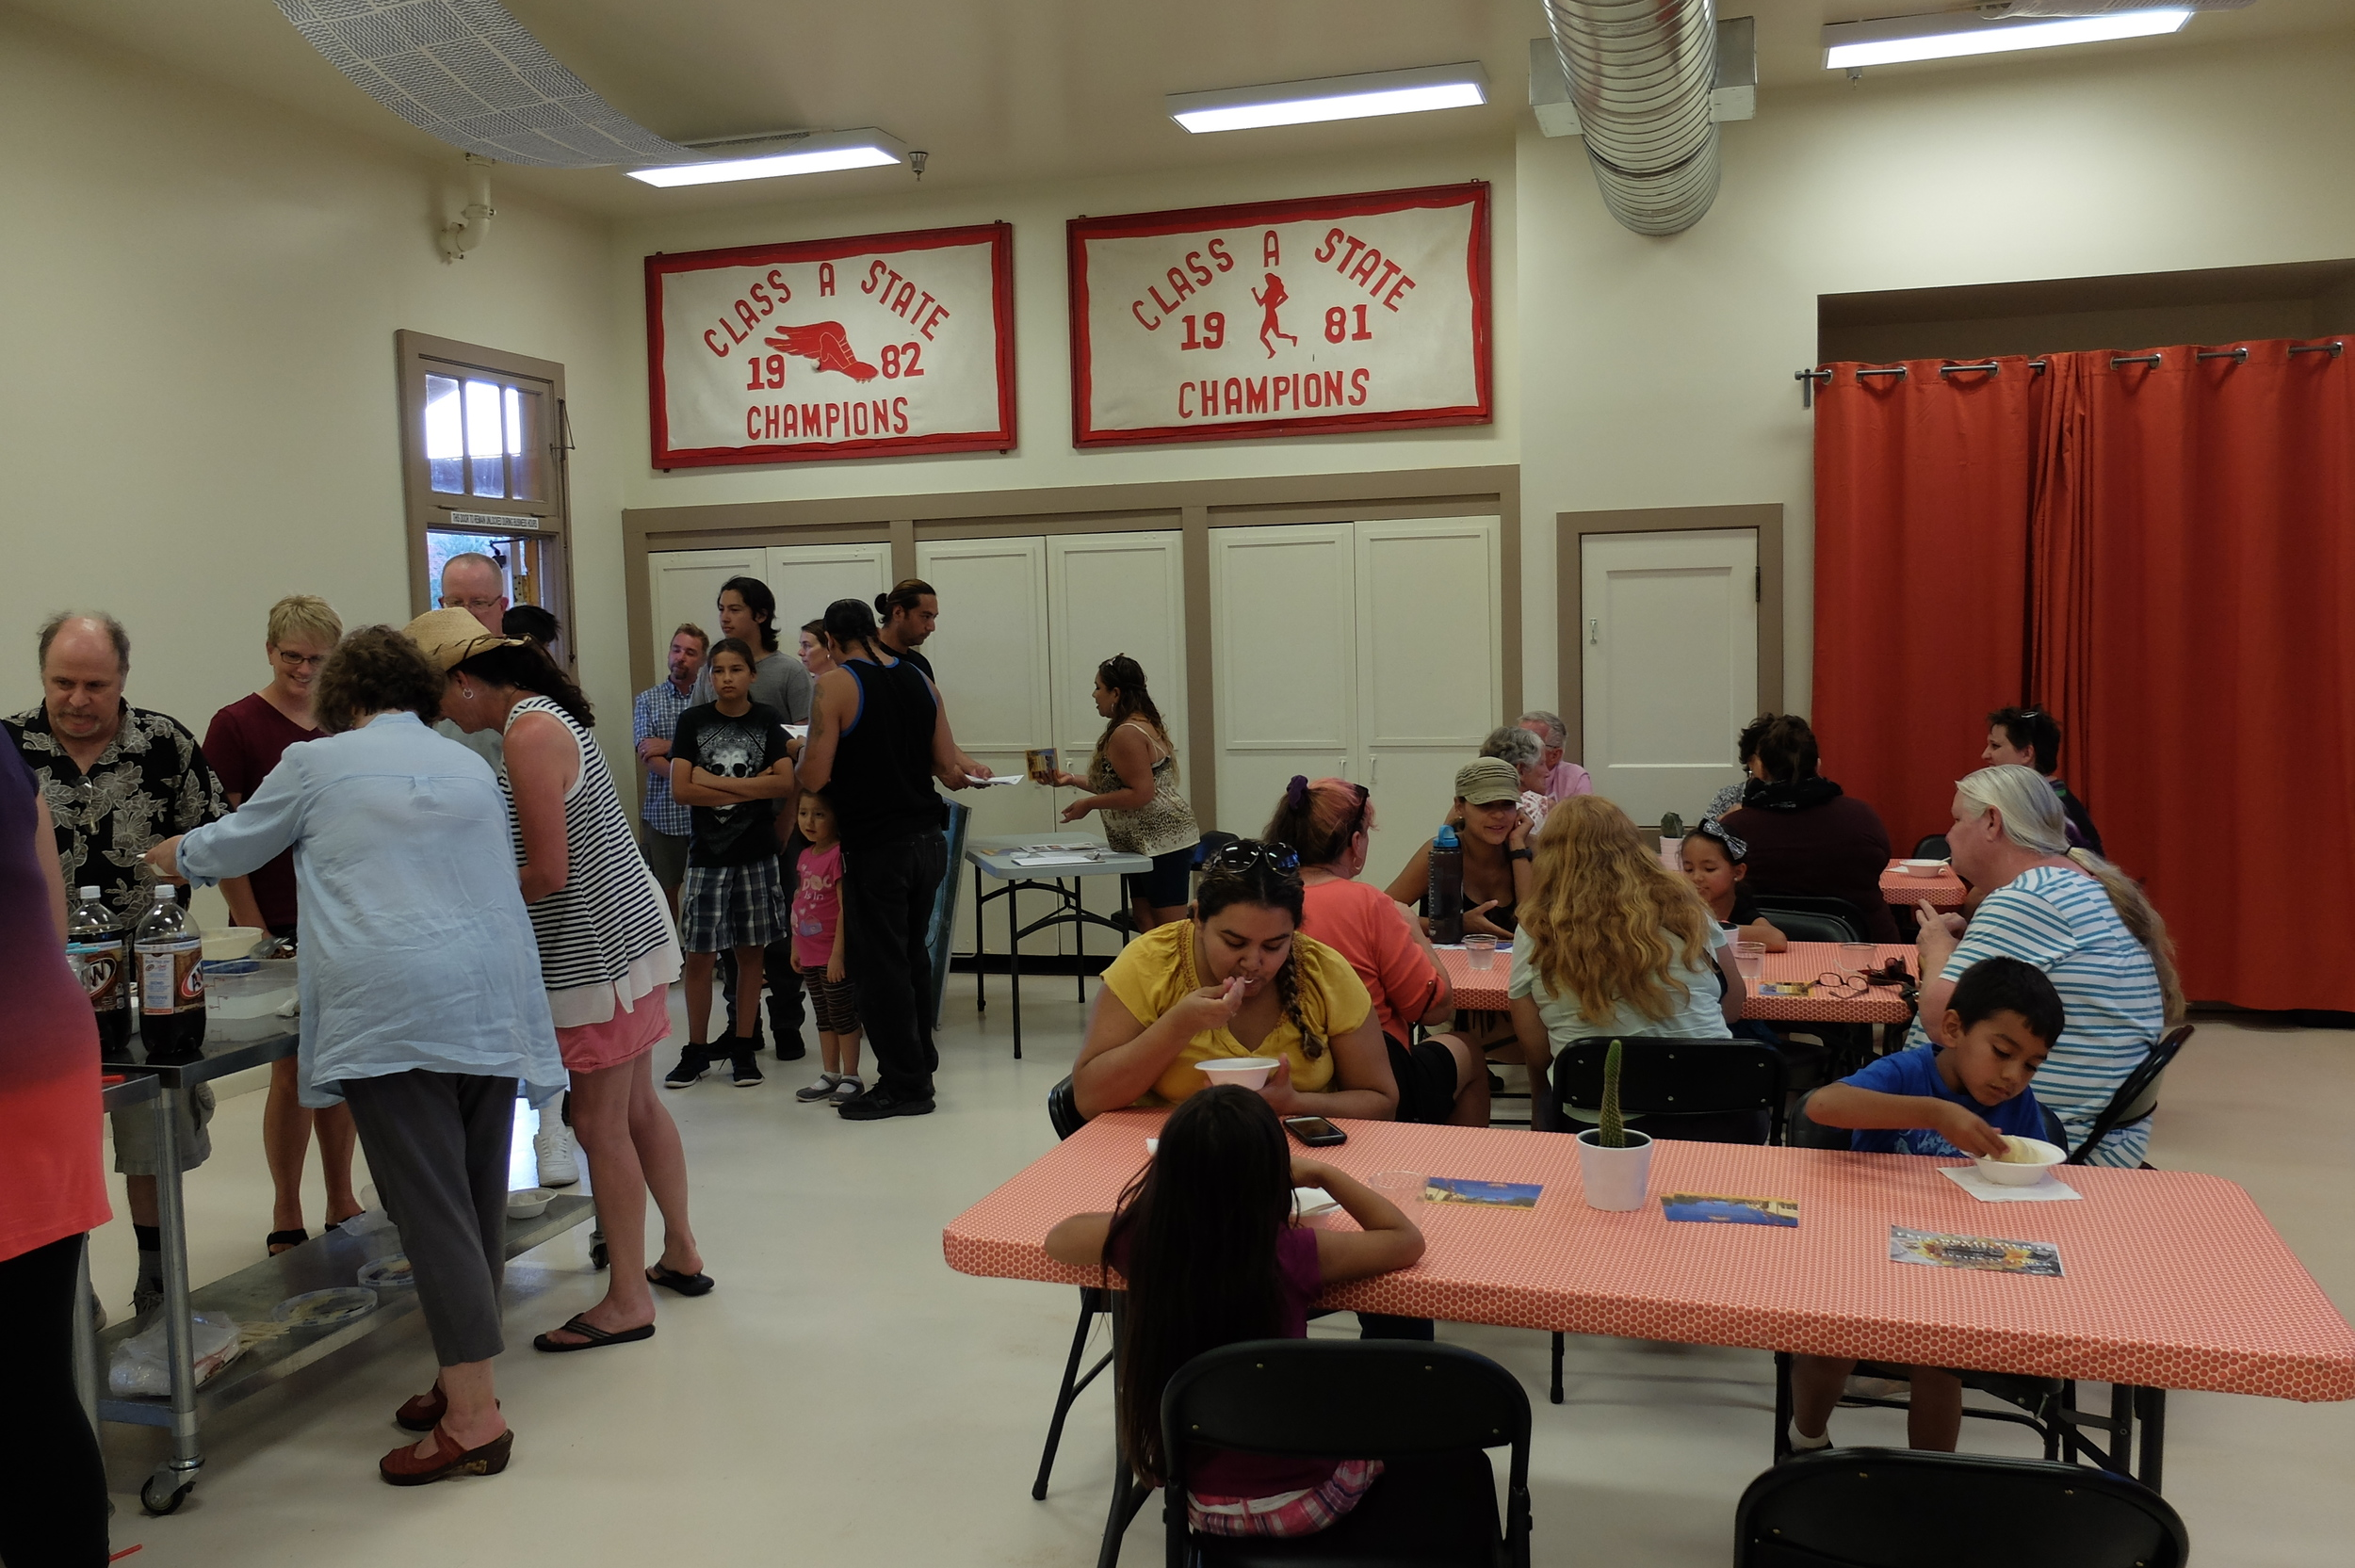 An ice cream social in the Palo Verde Room